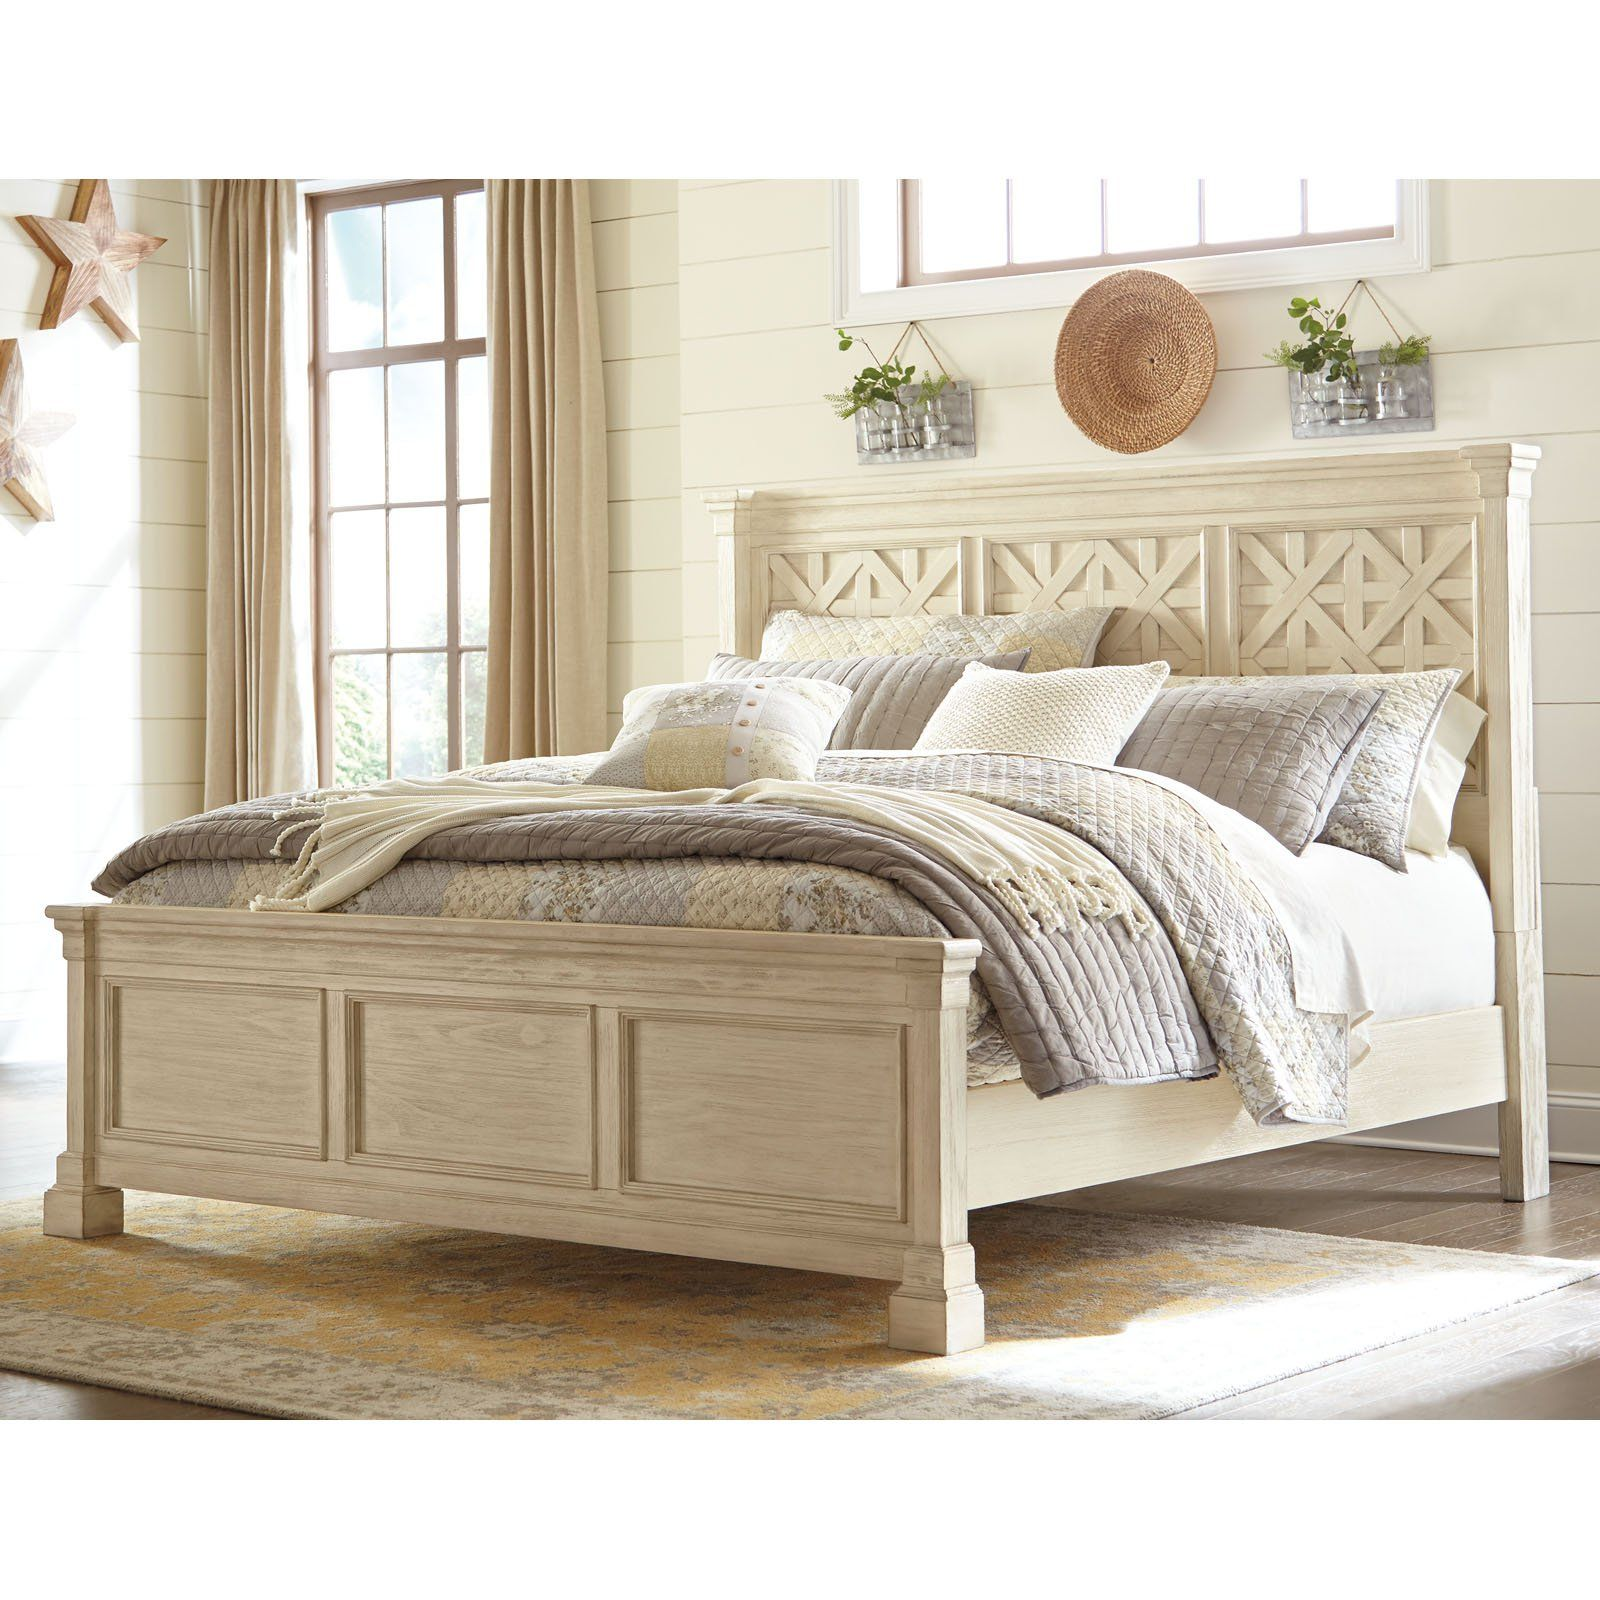 Signature Design by Ashley Bolanburg Panel Bed Bedroom